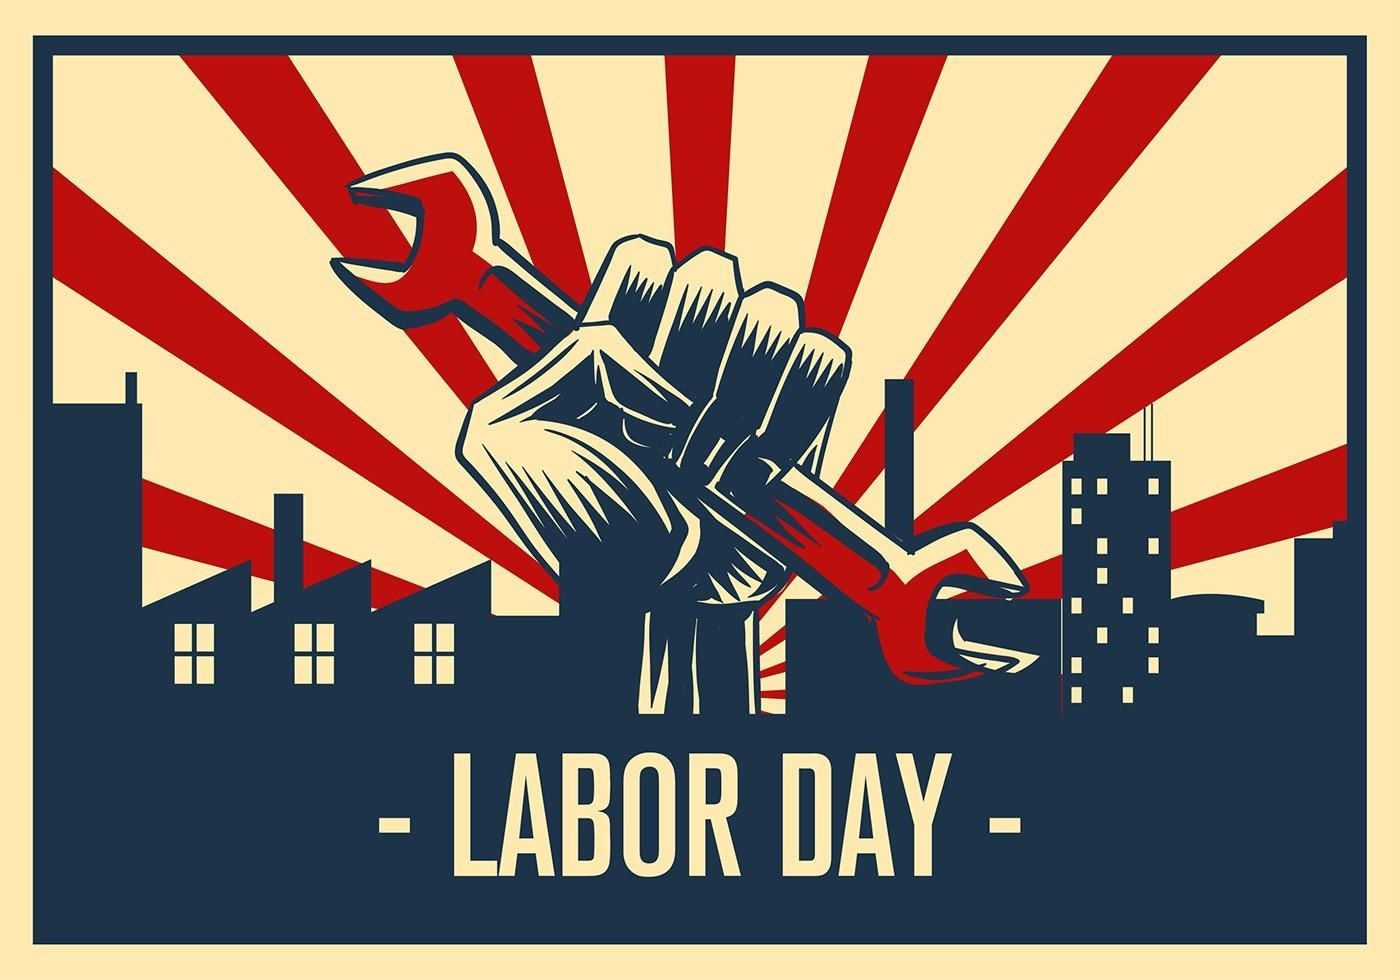 Have A Safe And Happy Holiday Laboronlaborday